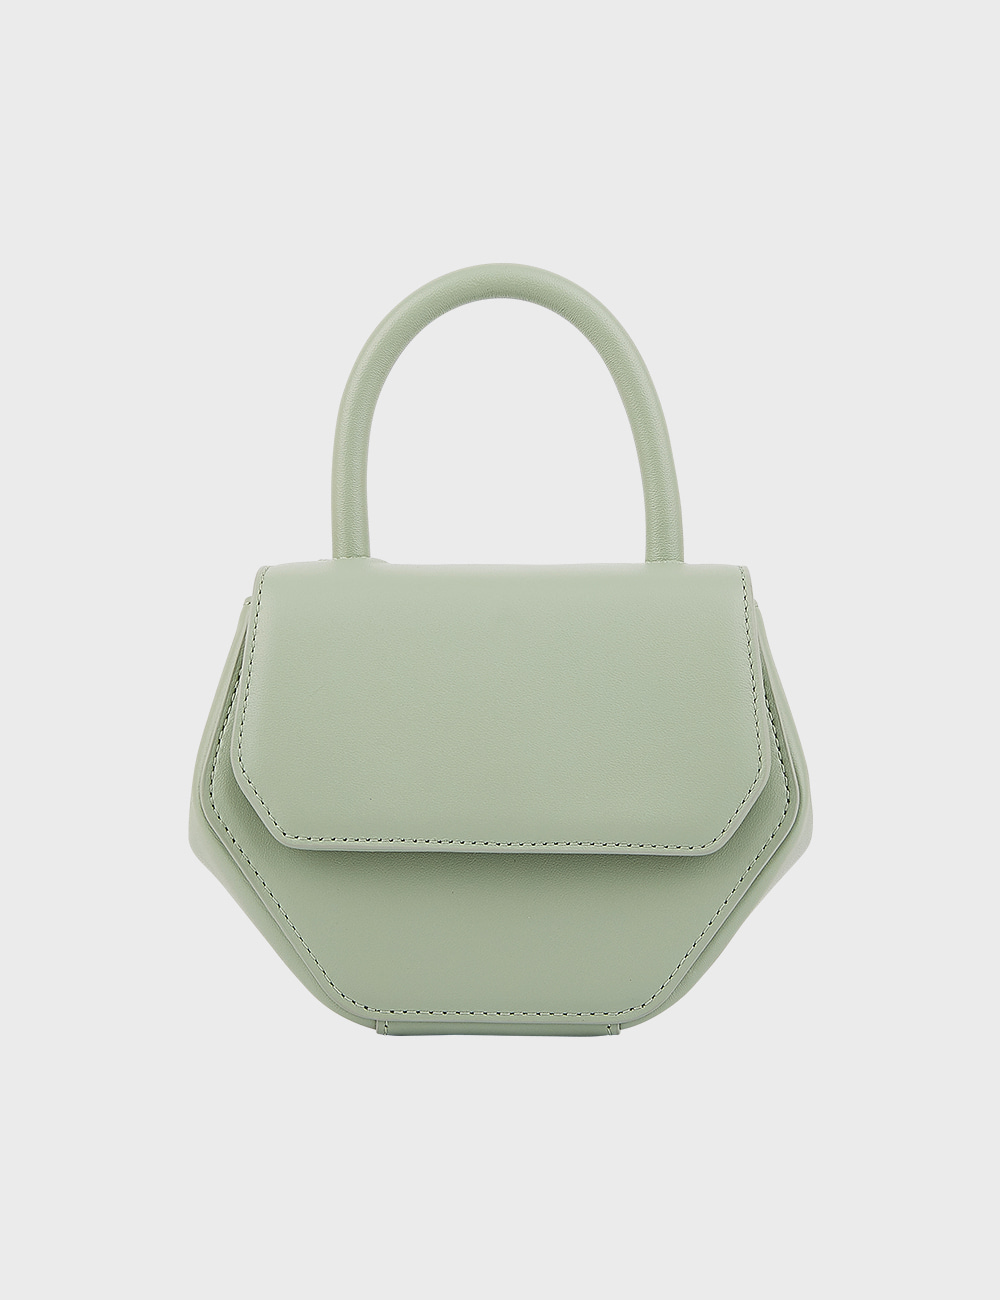 MAISON246,246 MAGOT SMALL BAG - MINT,No.246